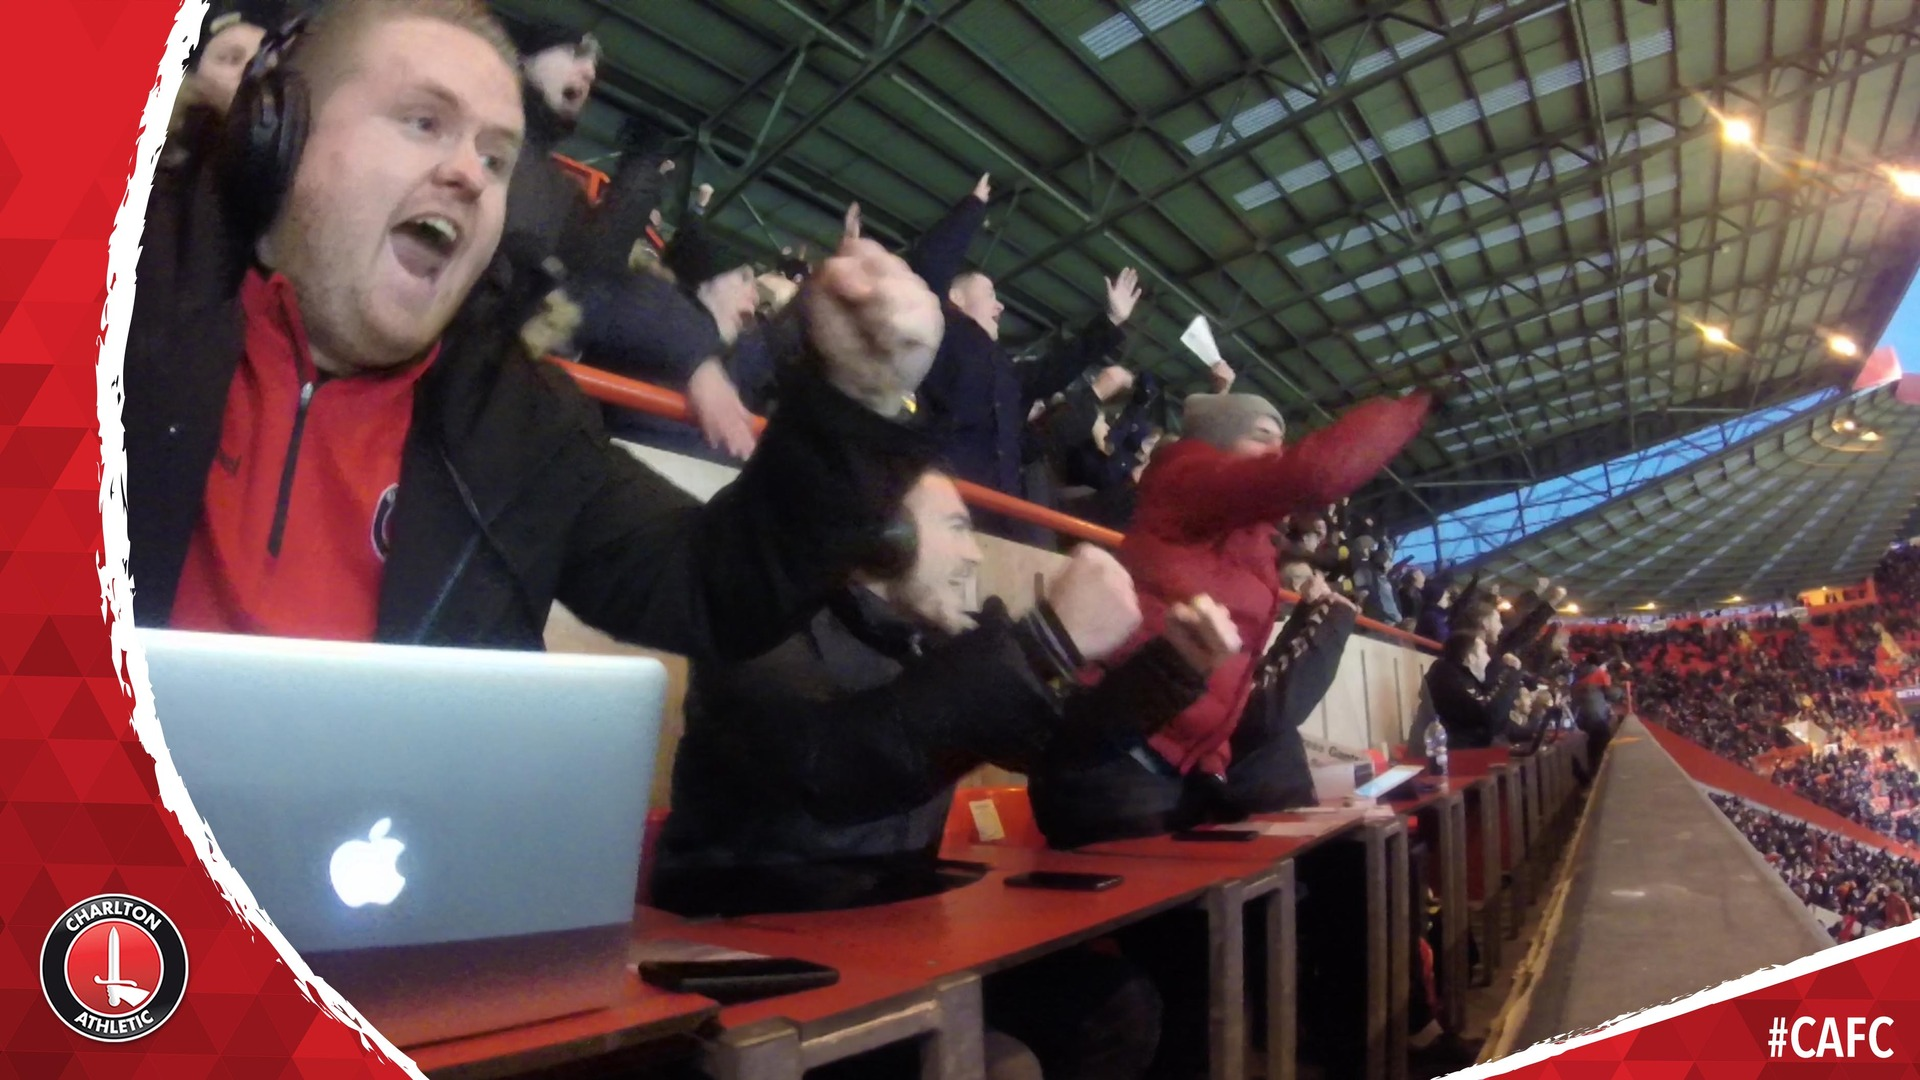 Lewis Page and Josh Cullen celebrate Charlton's equaliser against Sunderland in the commentary box